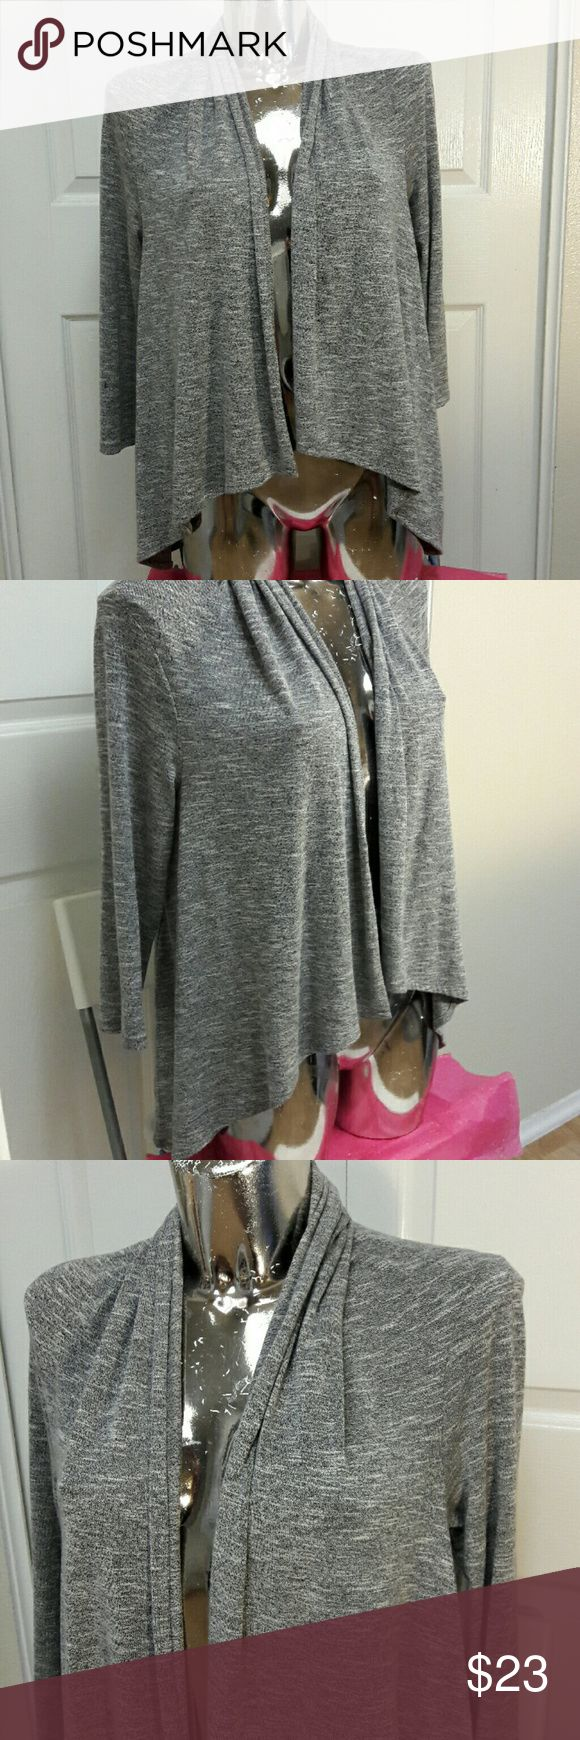 """LOFT Lightweight Soft Sweater/Cover Up Super Like New just missing tags!! Excellent condition from Loft, womens size S. Super soft - lightweight - has some stretch - color is gray with white. Armpit to end of sleeve: 13"""" - Armpit to bottom hem: 20"""" Has a wavy/uneven bottom for flowyness. ... Ask me anything! LOFT Sweaters"""